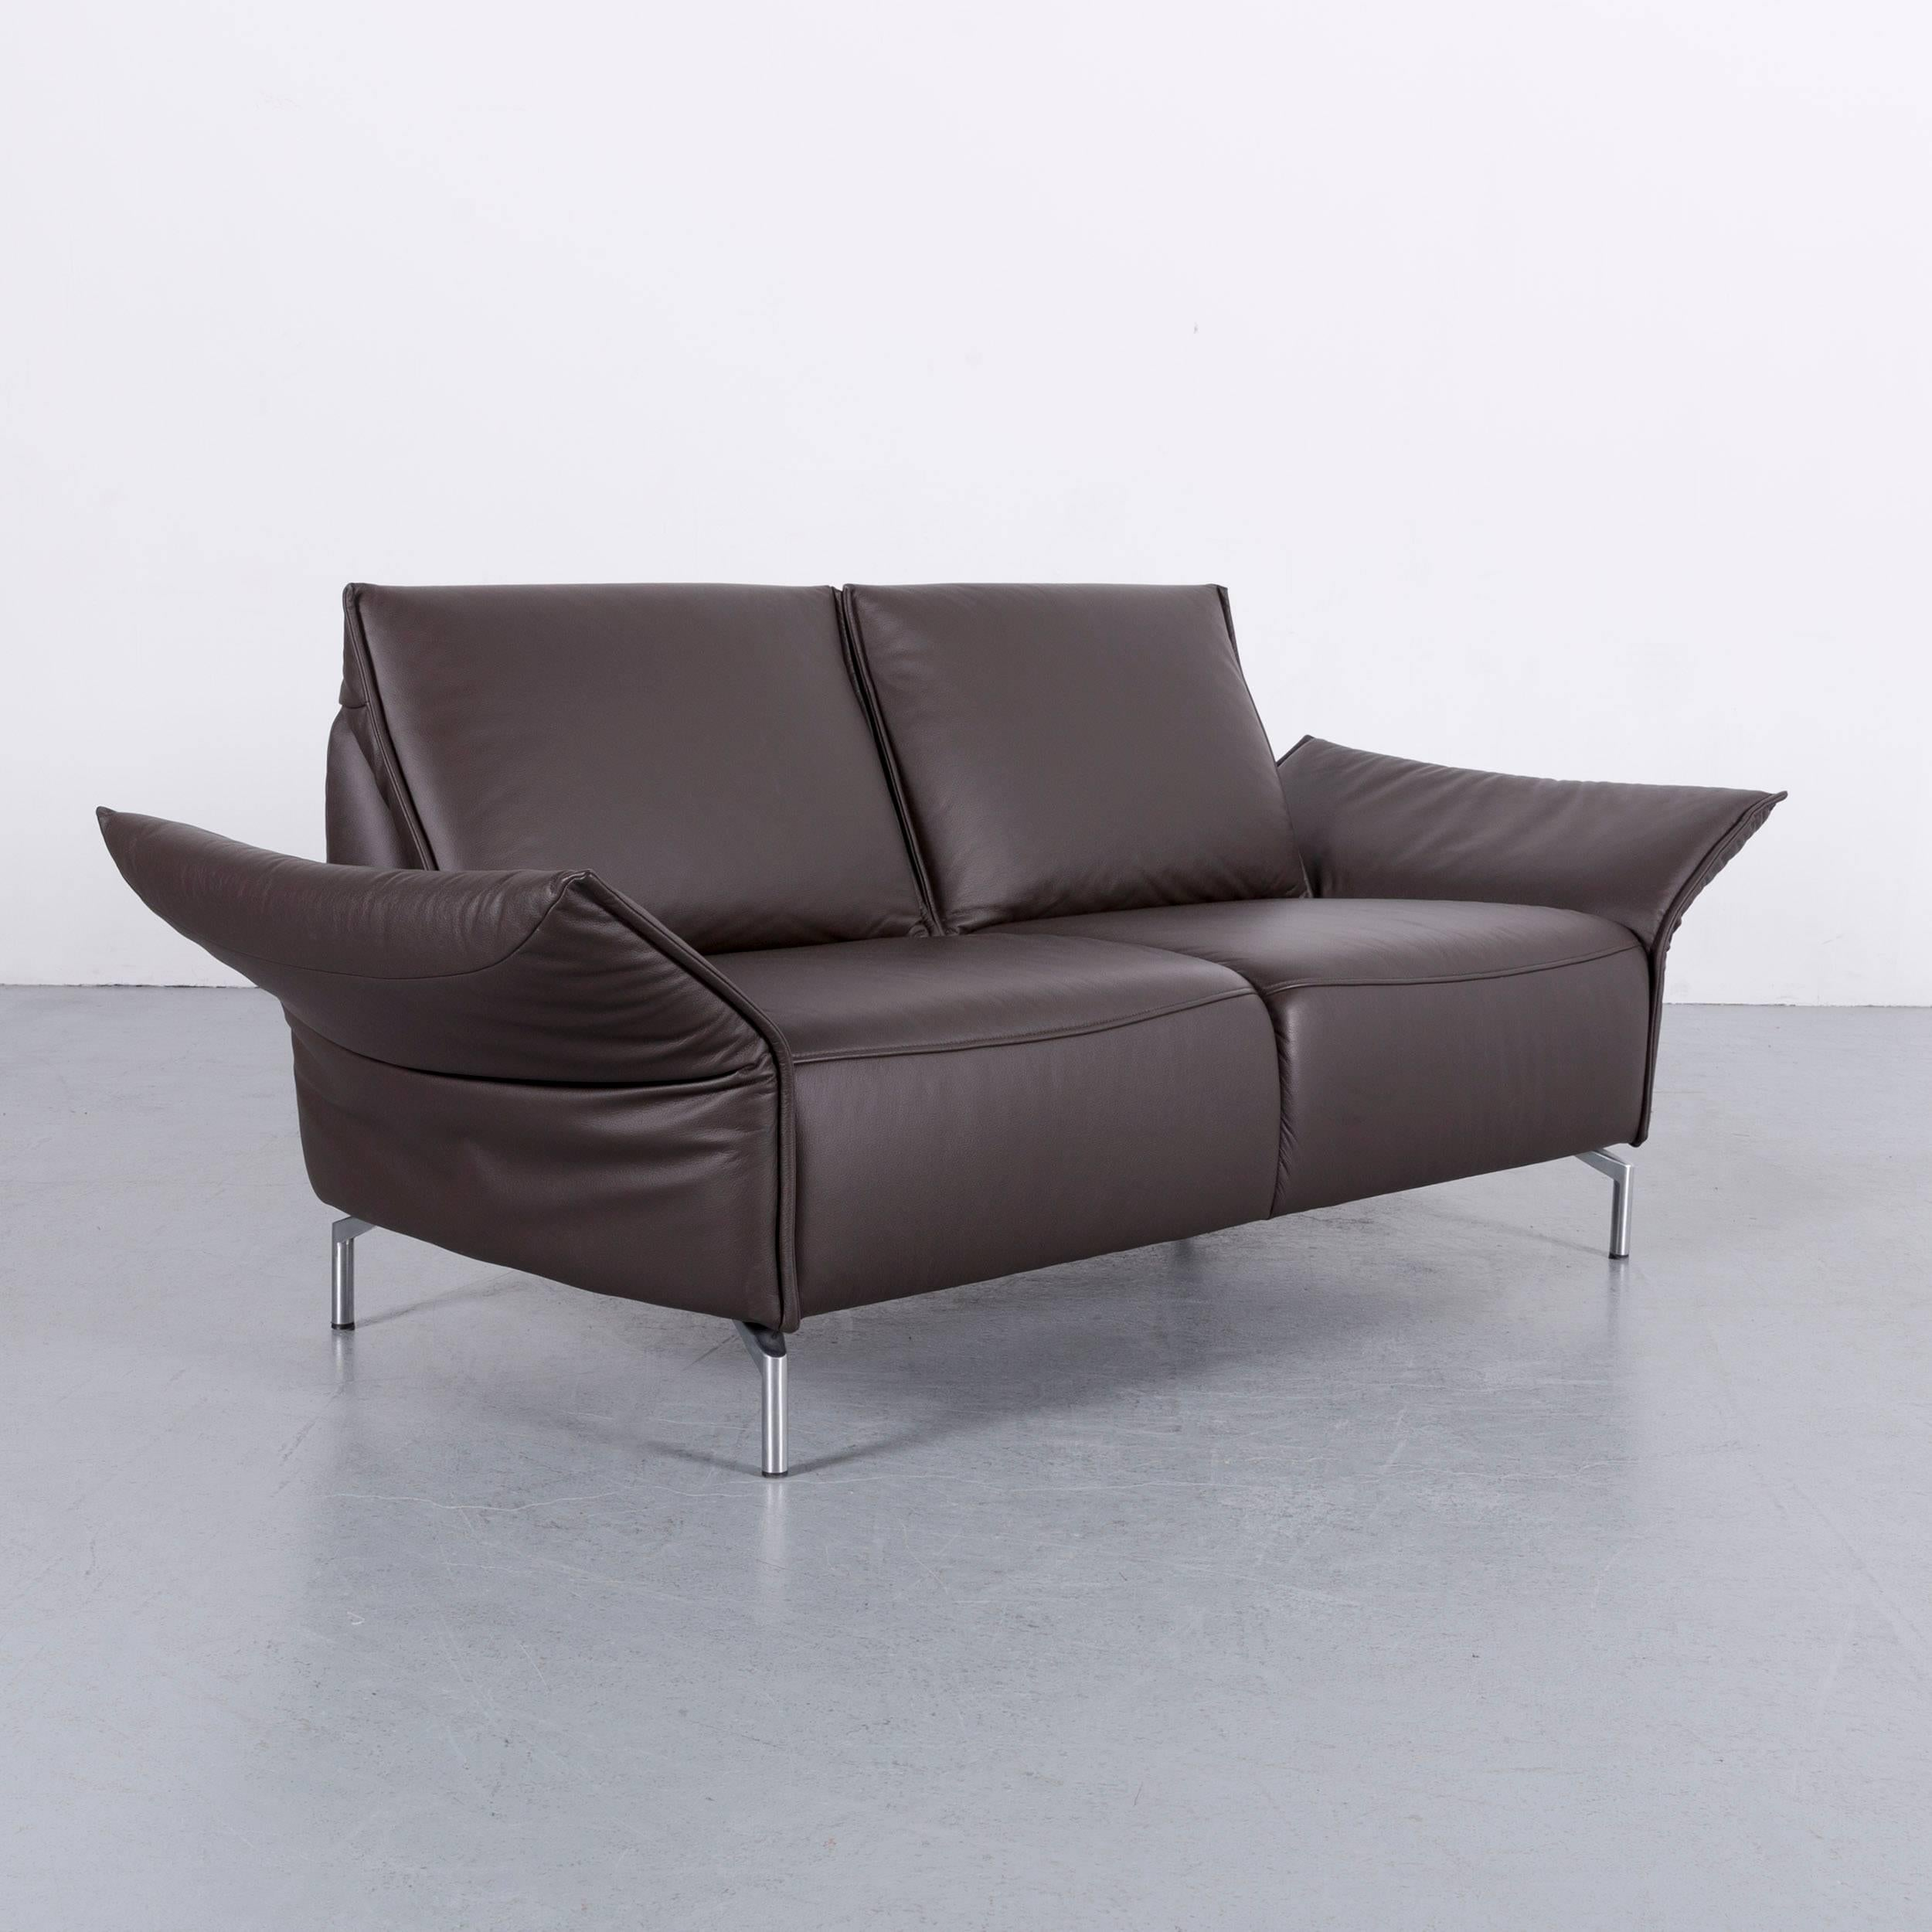 Koinor Vanda Koinor Vanda Leather Sofa Set Of Brown Three-seat, Two